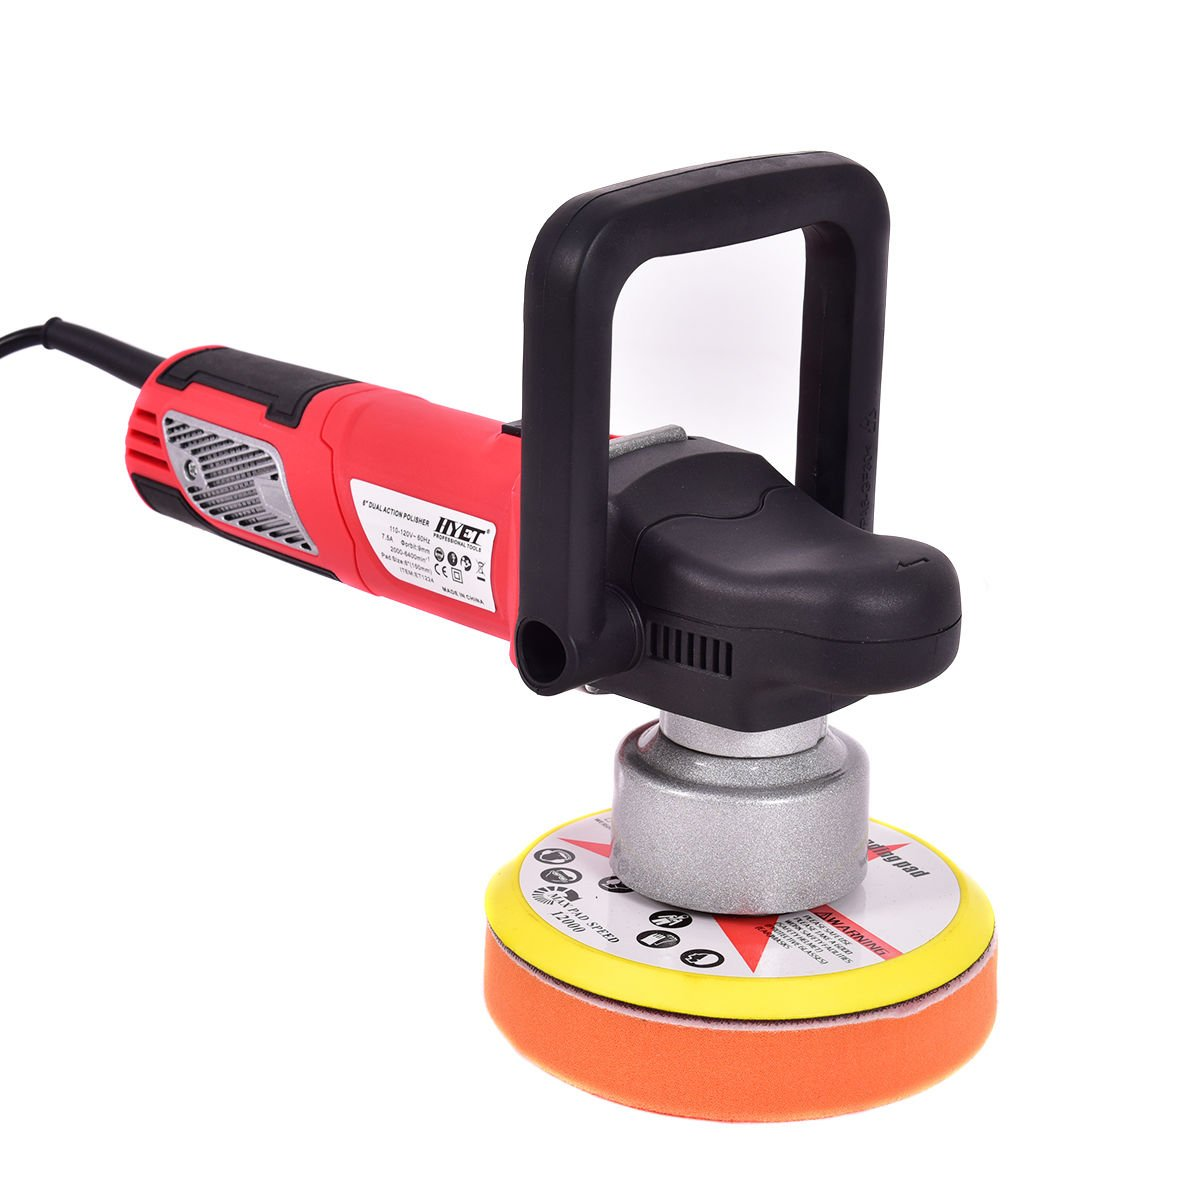 6'' Variable Speed Dual-Action Polisher Random Orbital Polisher Kit Auto Detail,NEW by Jikkolumlukka